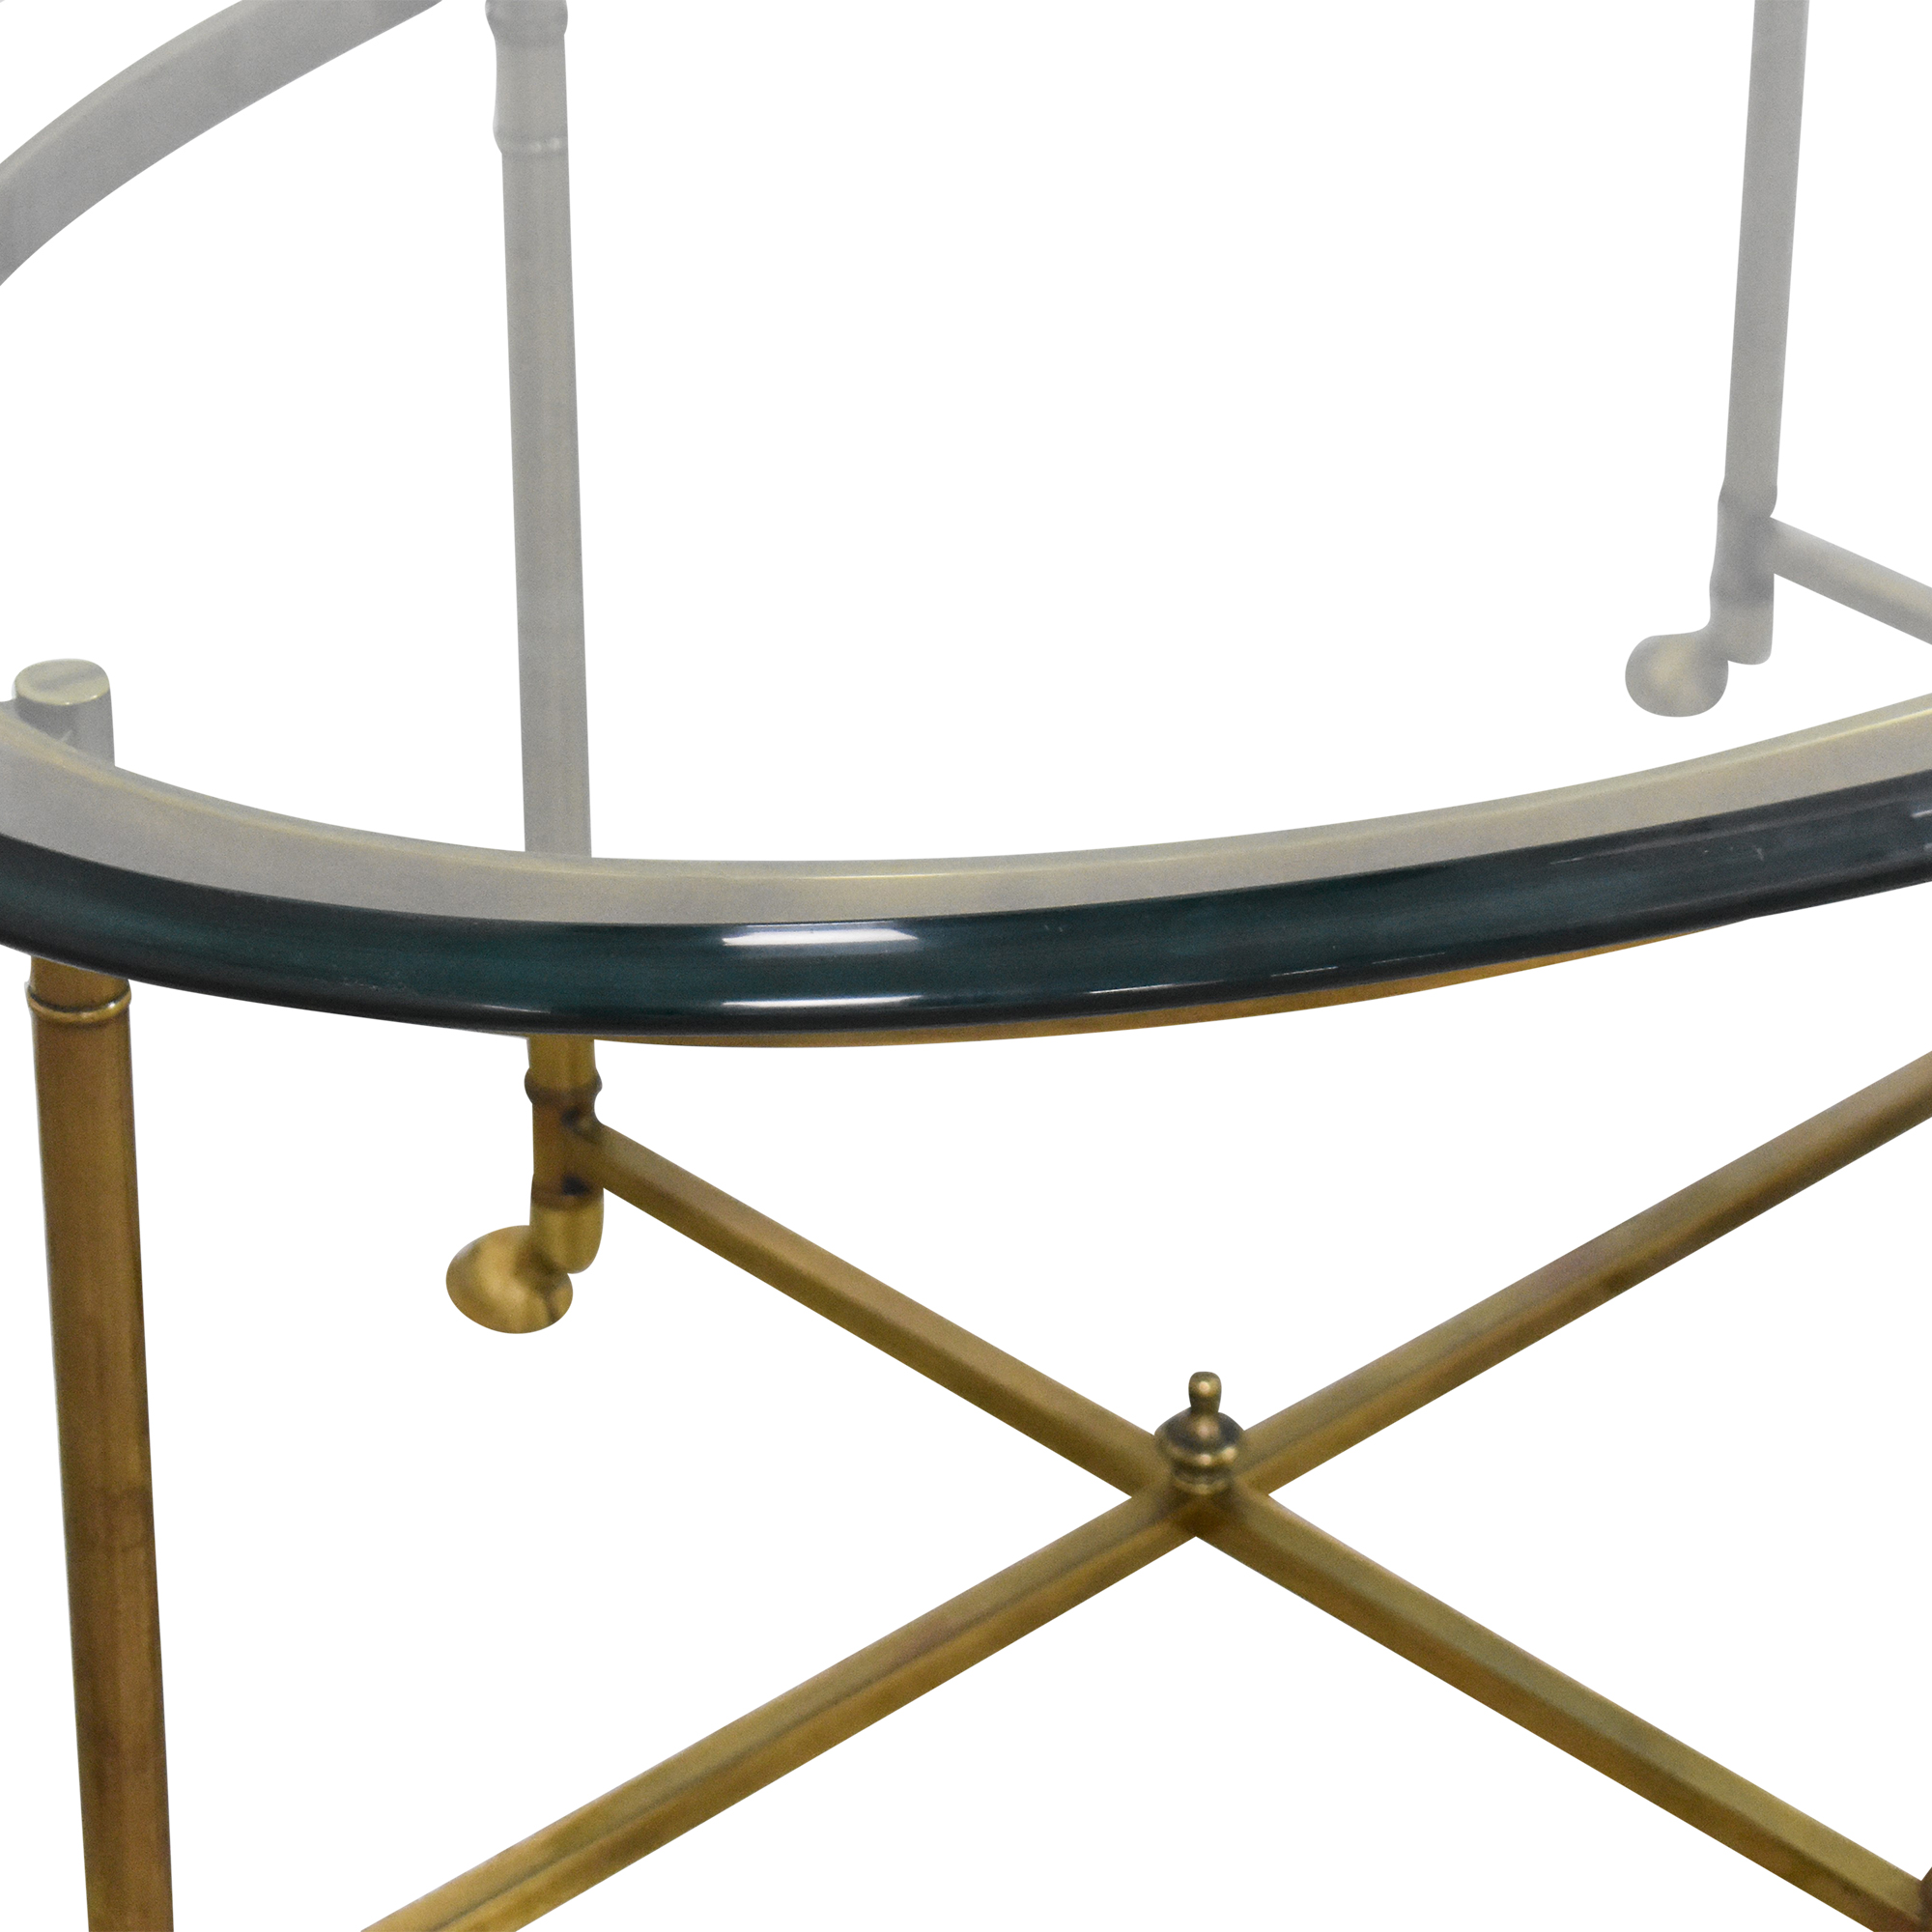 Stickley Furniture Stickley Furniture Oval Cocktail Table used